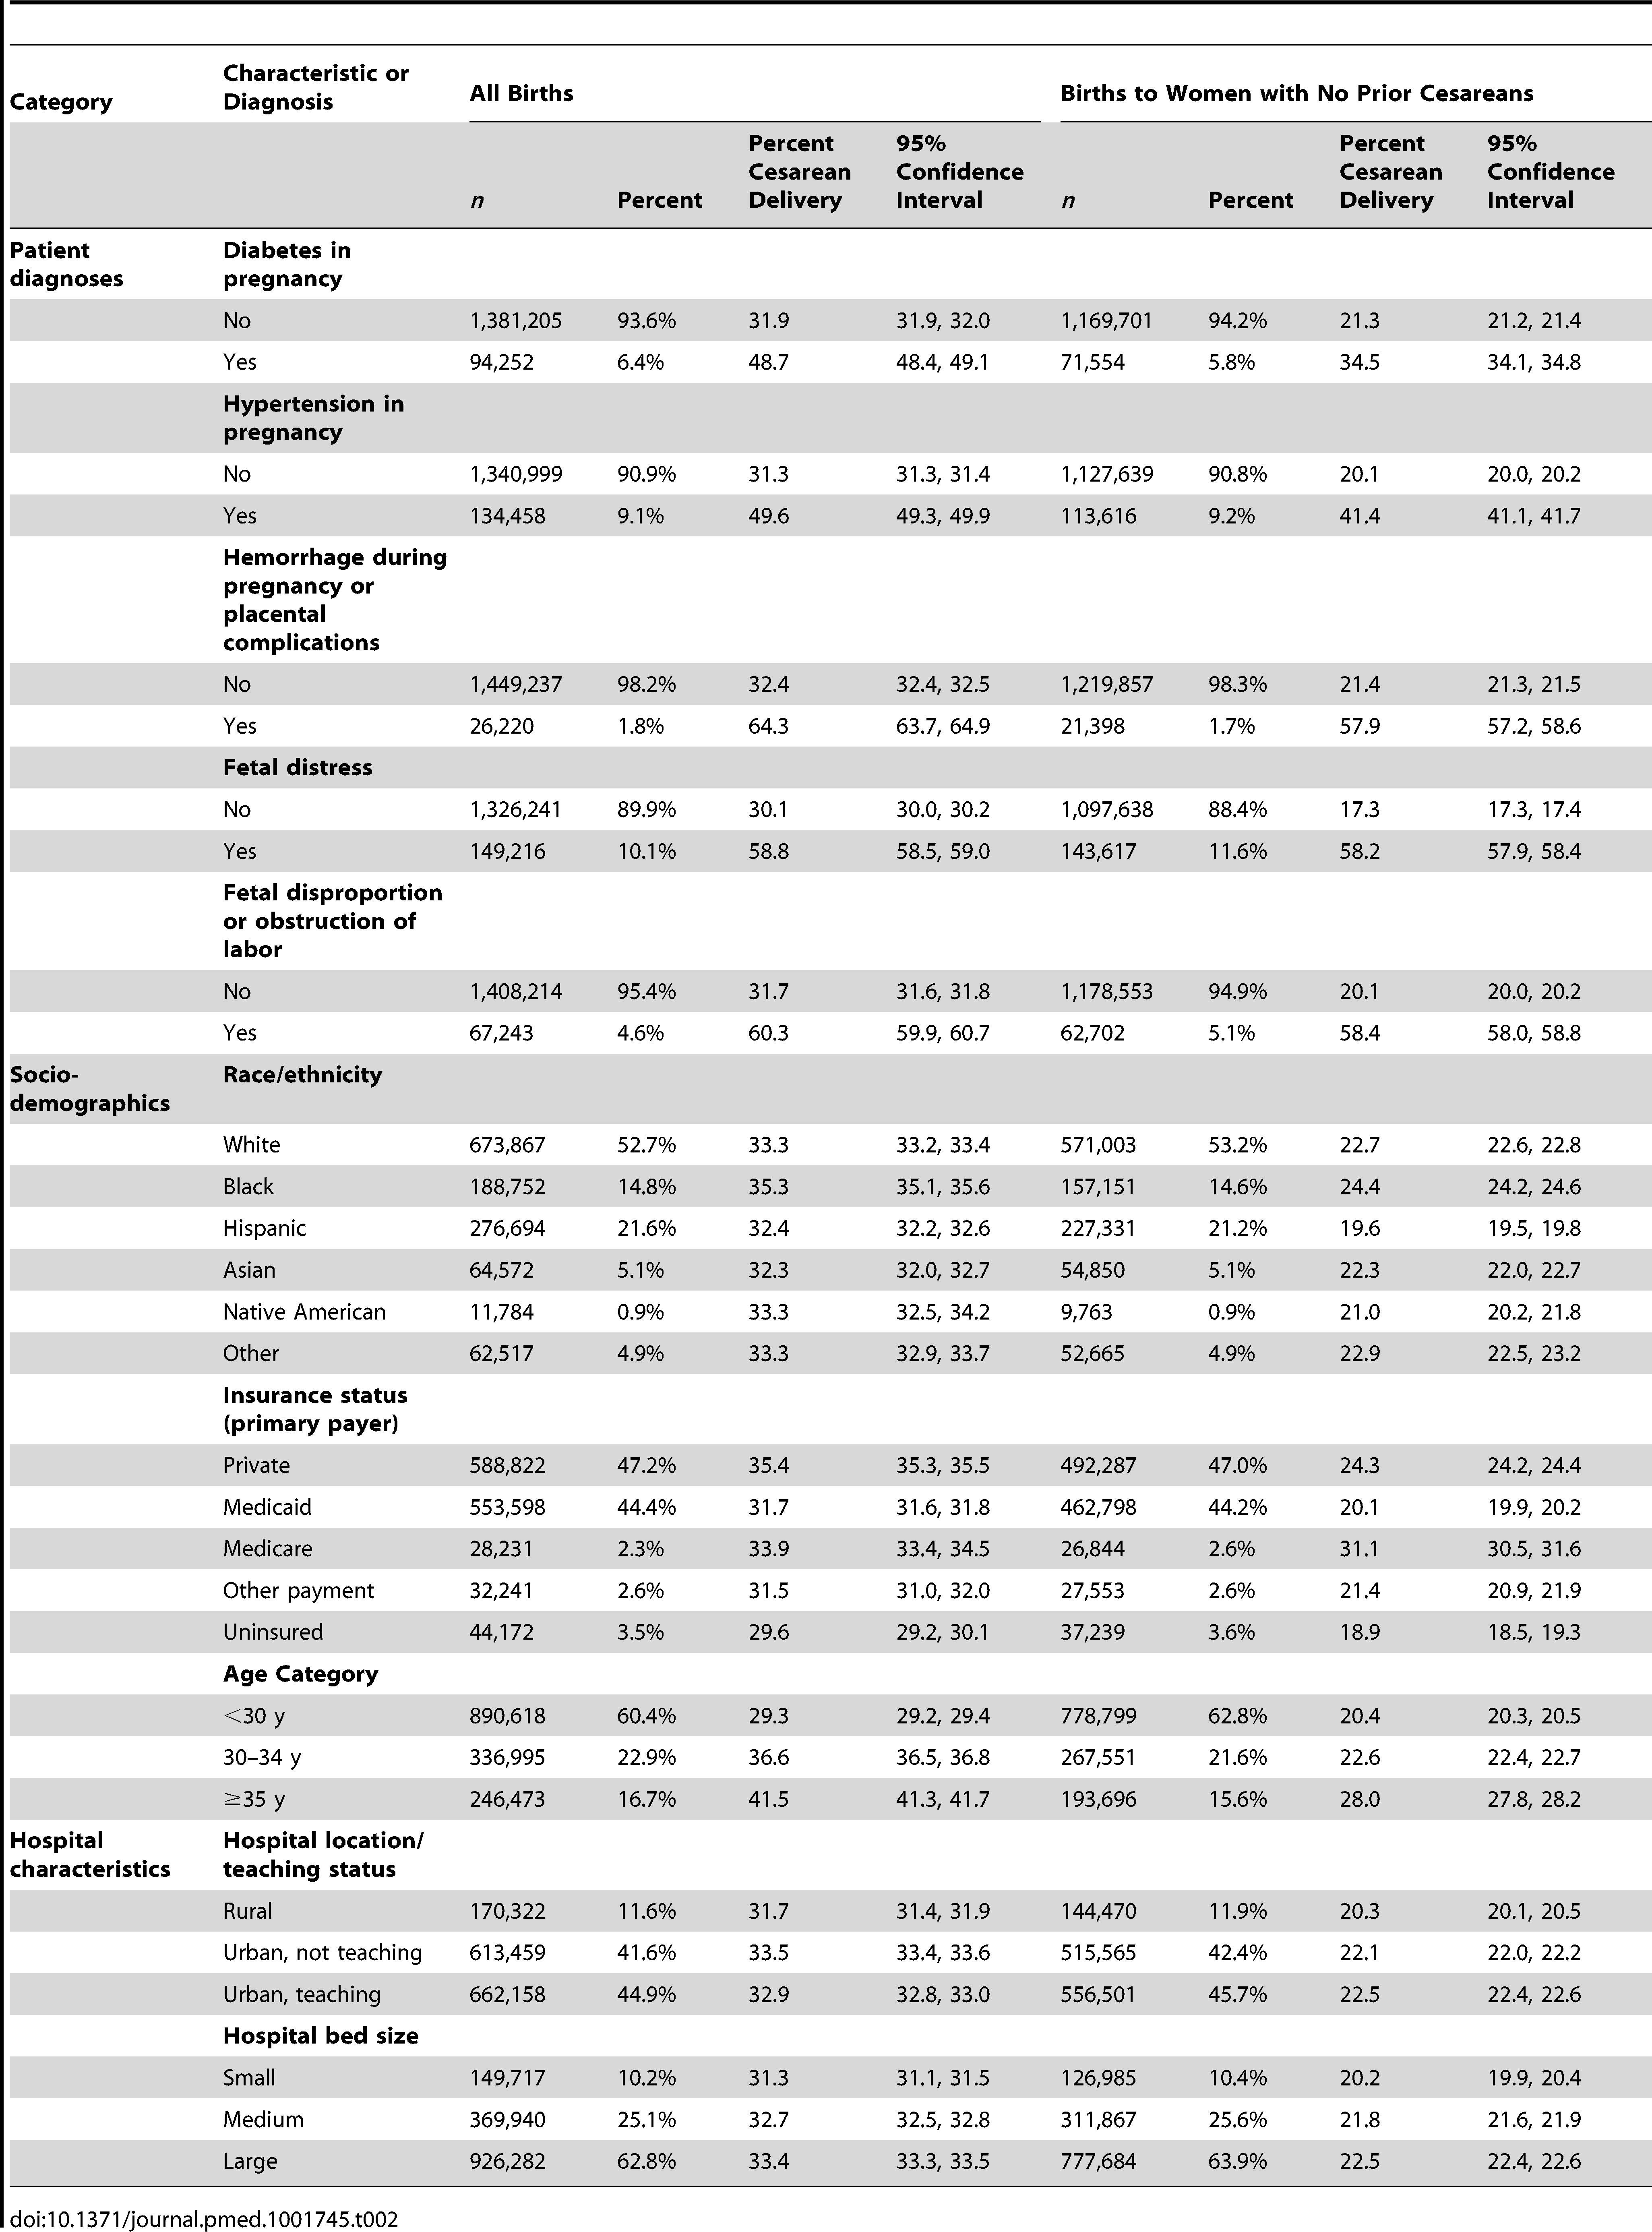 US 2009–2010 births to all women and women with no prior cesarean: sample size, percentage frequency distribution, and percentage of women with cesarean deliveries and 95% confidence intervals by covariate.